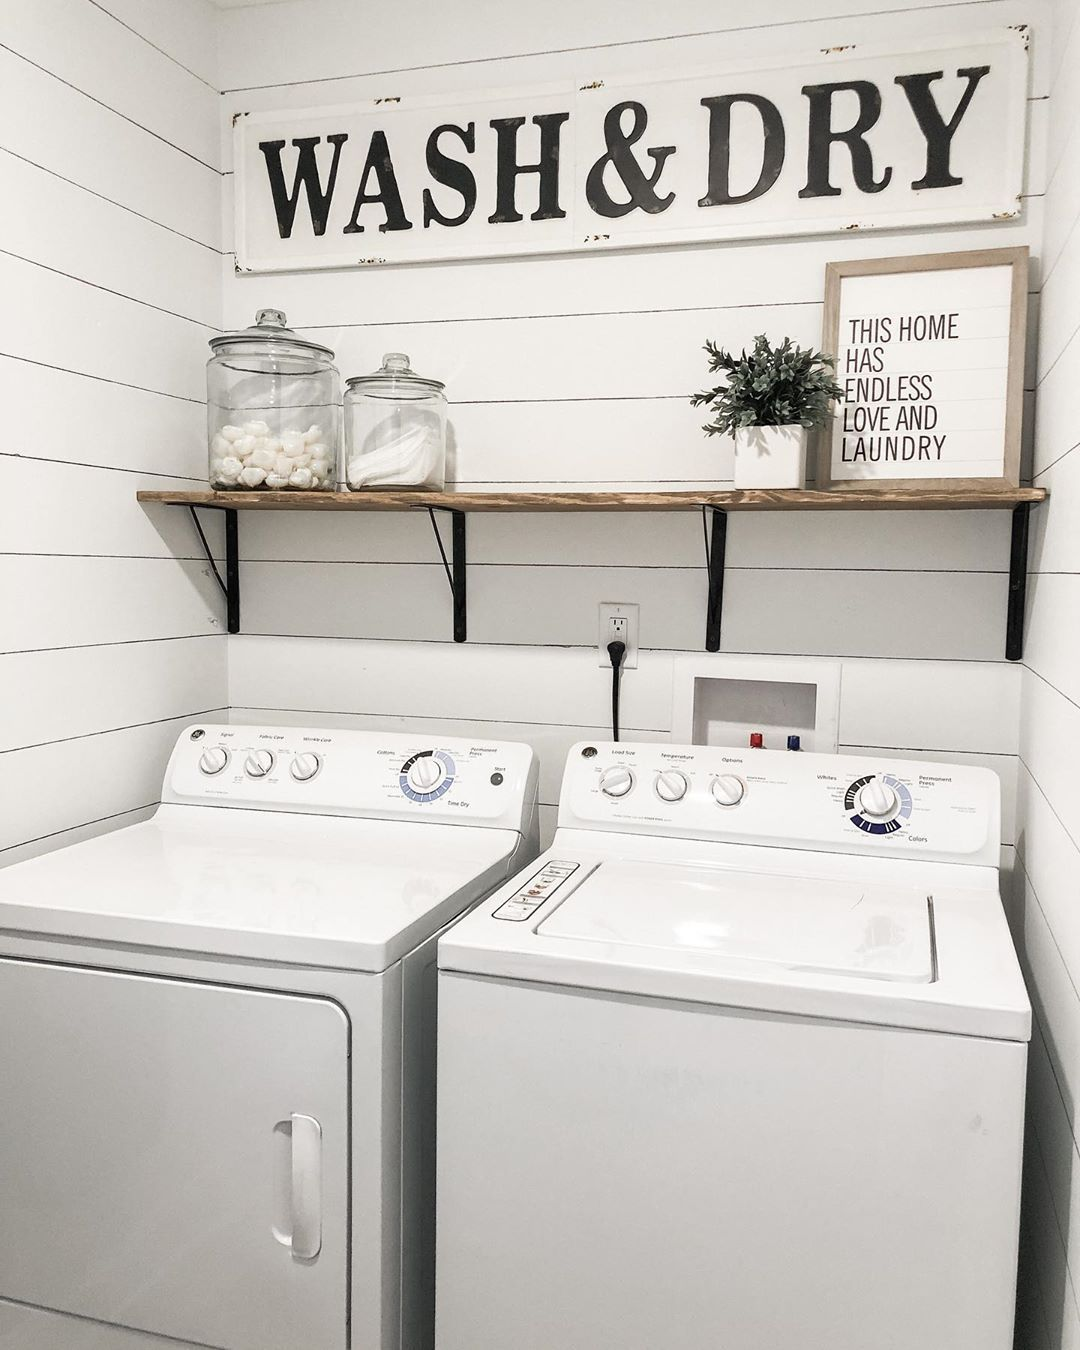 Laundry On The To Do List Even Small Spaces Can Be Transformed Into A Stylish Space For That In 2020 Laundry Room Diy Laundry Room Renovation Laundry Room Wall Decor